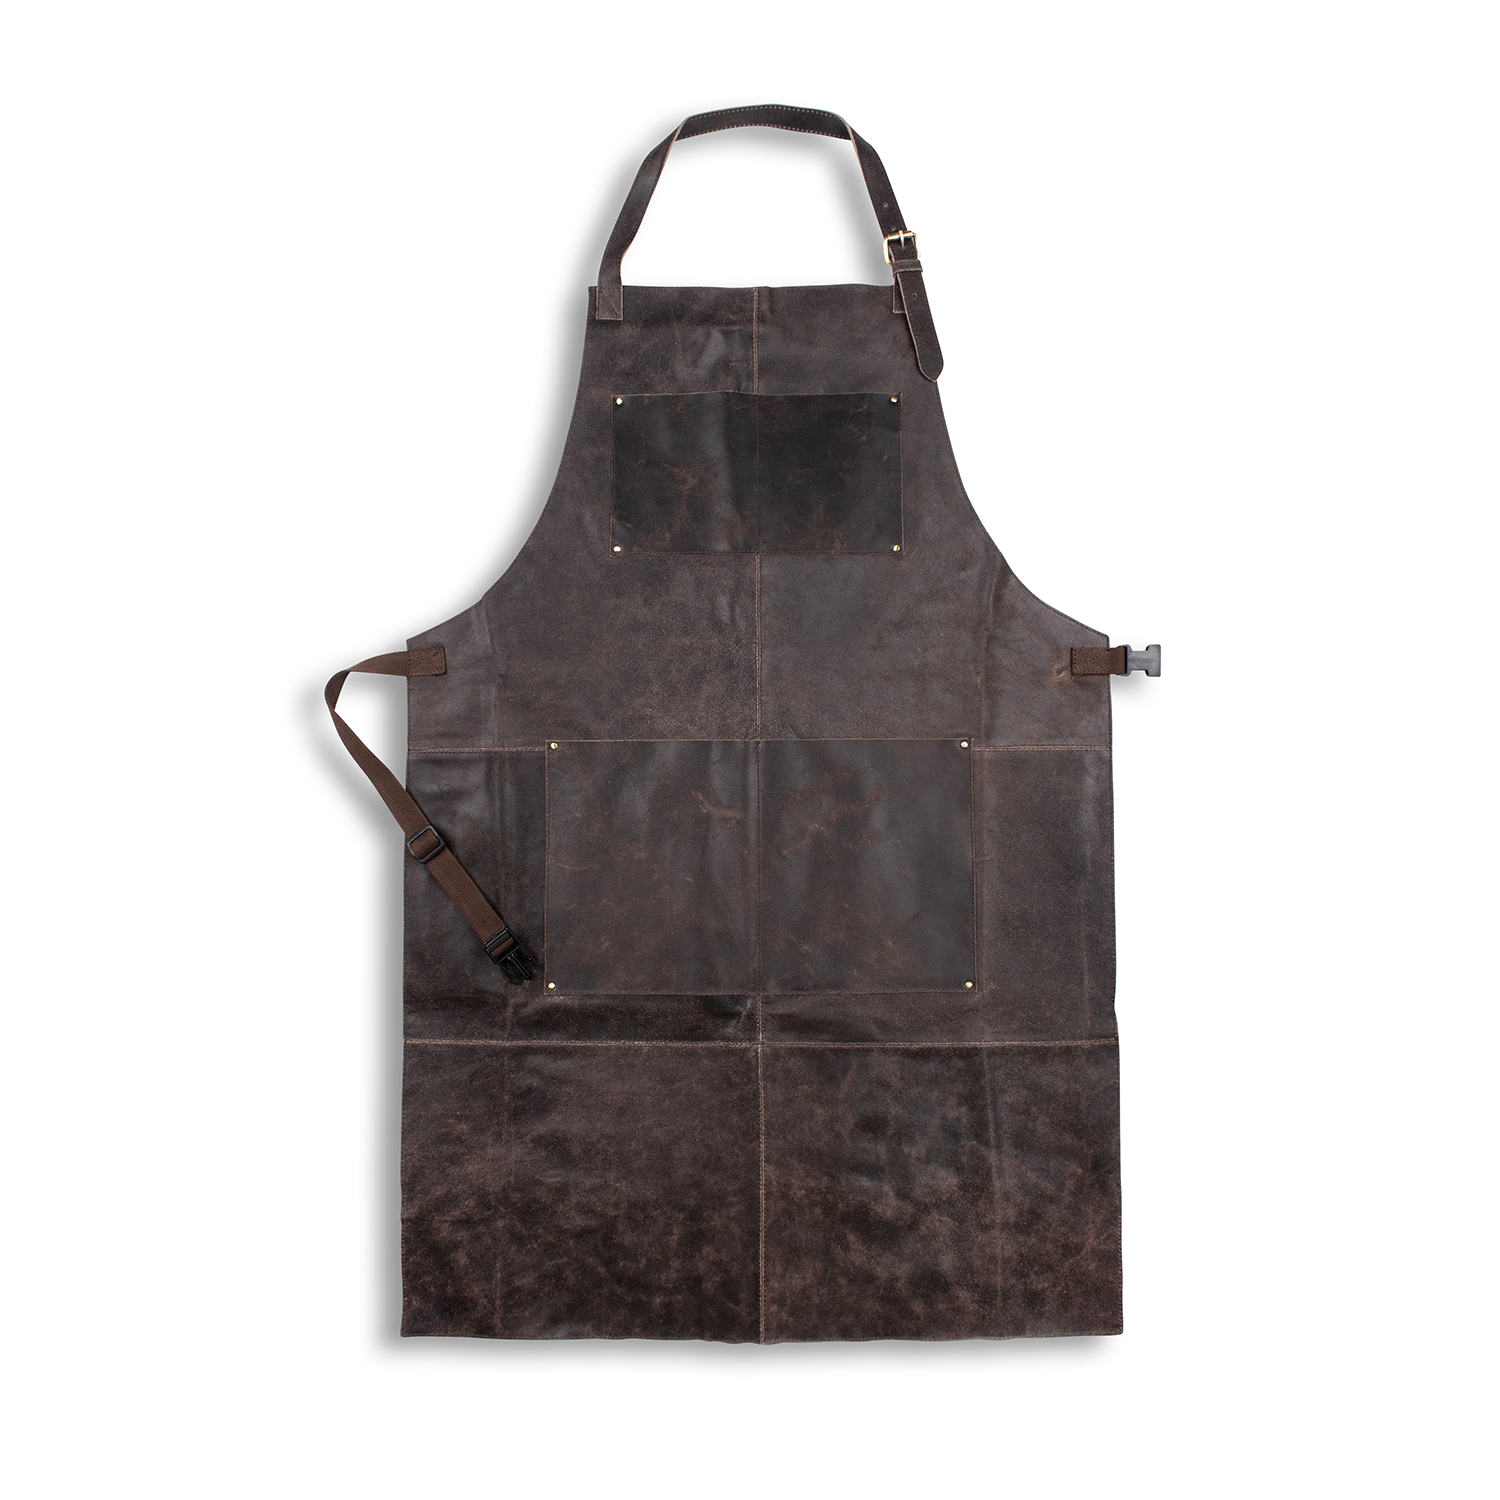 WOODLAND LEATHER UNISEX CRACKLE LEATHER APRON, FULL LENGTH WITH ADJUSTABLE TIE WAIST